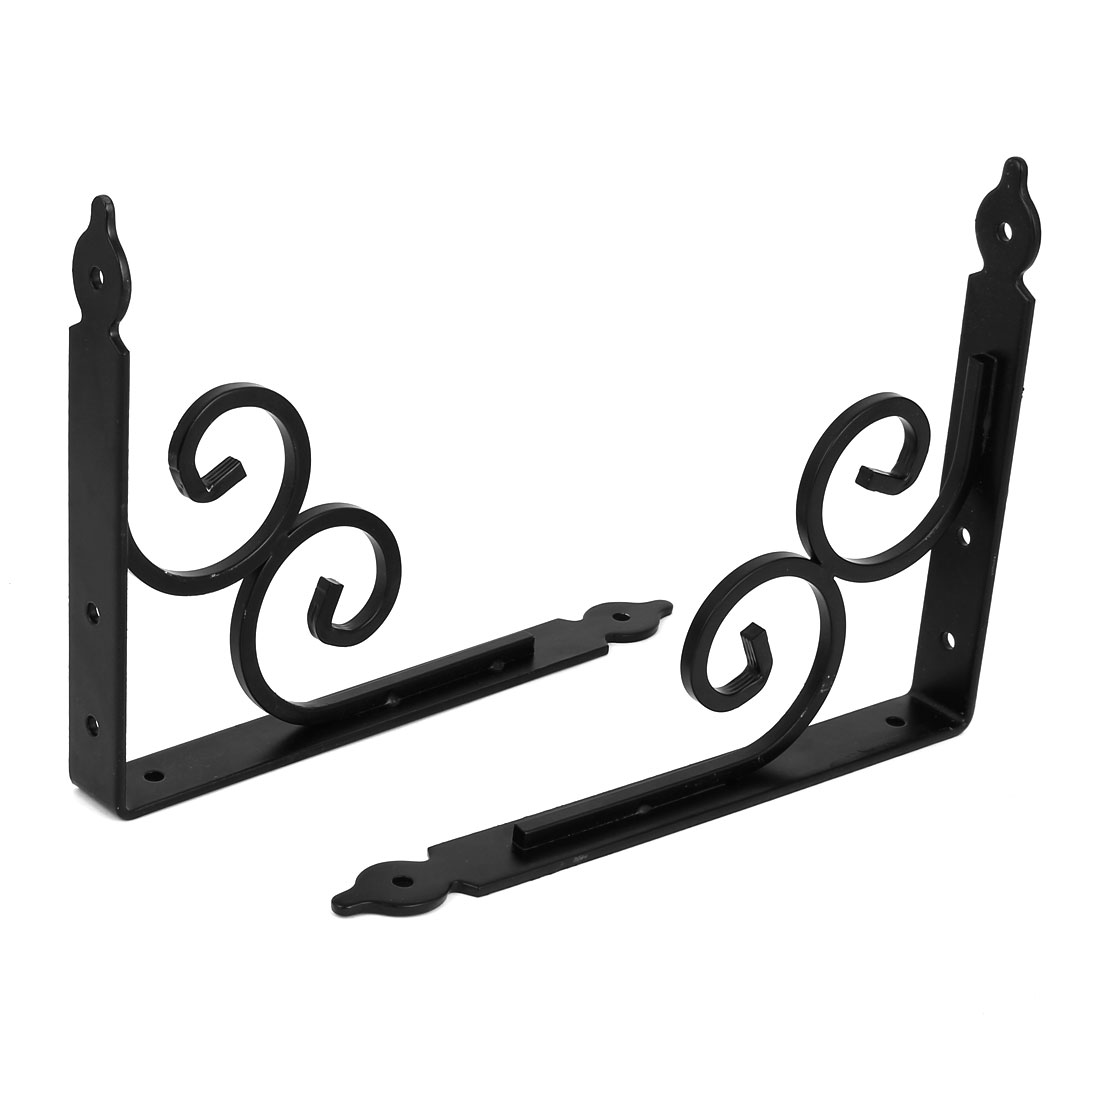 240mm x 190mm 90 degree Wall Mounted Shelf Bracket Brace Support Black 2pcs